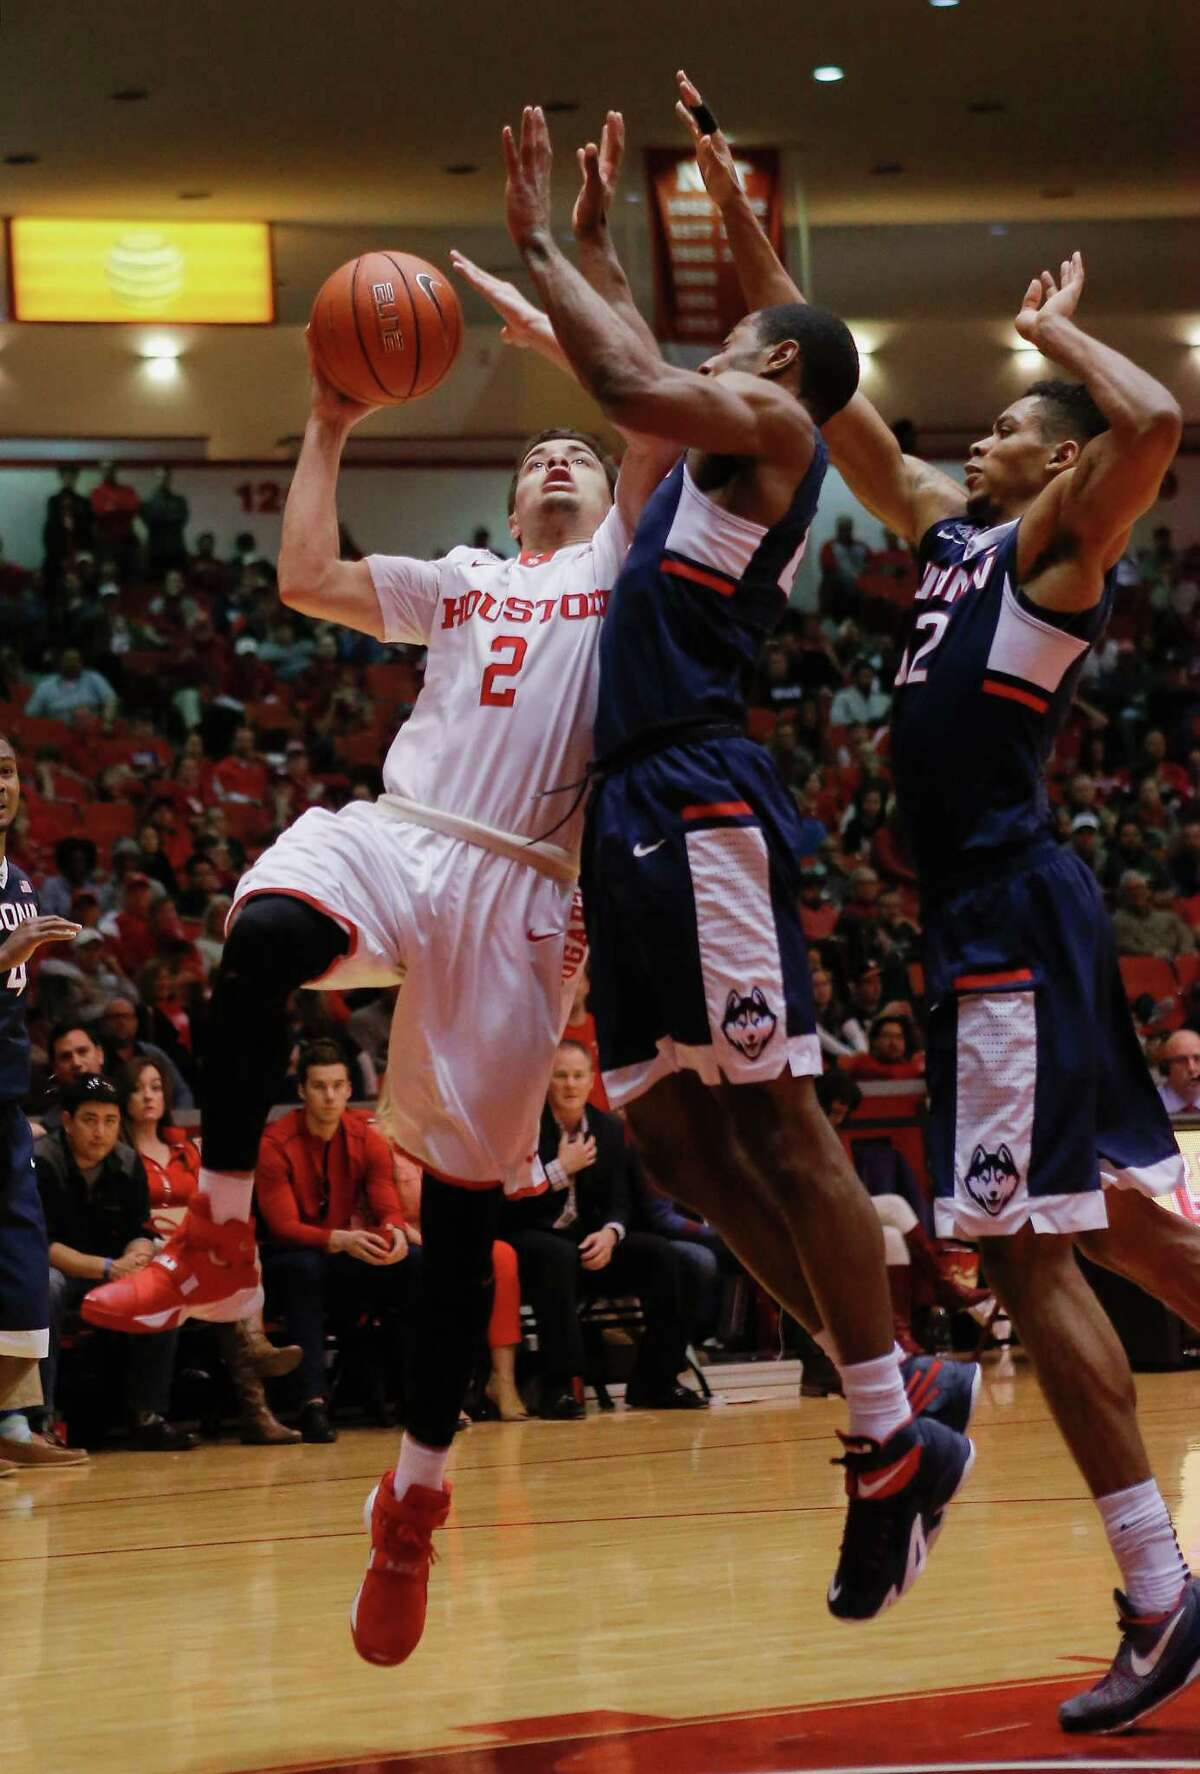 Houston guard Rob Gray Jr., left, drives to the basket as Connecticut guard Rodney Purvis, center, and forward Shonn Miller, right, defends during the second half of an NCAA college basketball game Sunday, Jan. 17, 2016 in Houston. Connecticut won 69-57. (AP Photo/Bob Levey)